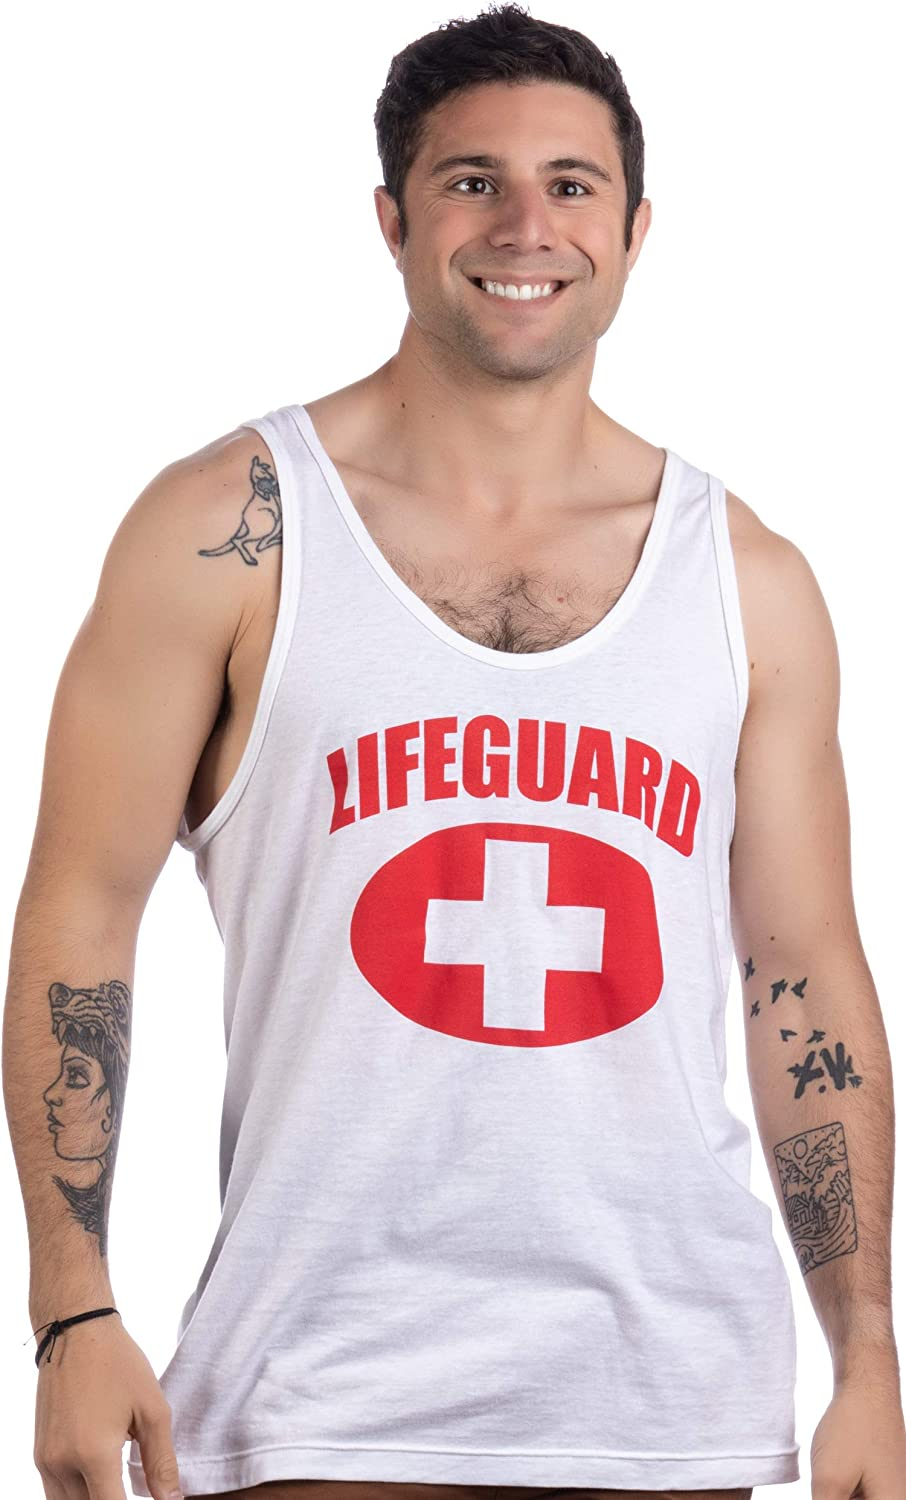 Lifeguard | White Adult Unisex Lifeguarding Fitted Unisex Tank Top: Clothing